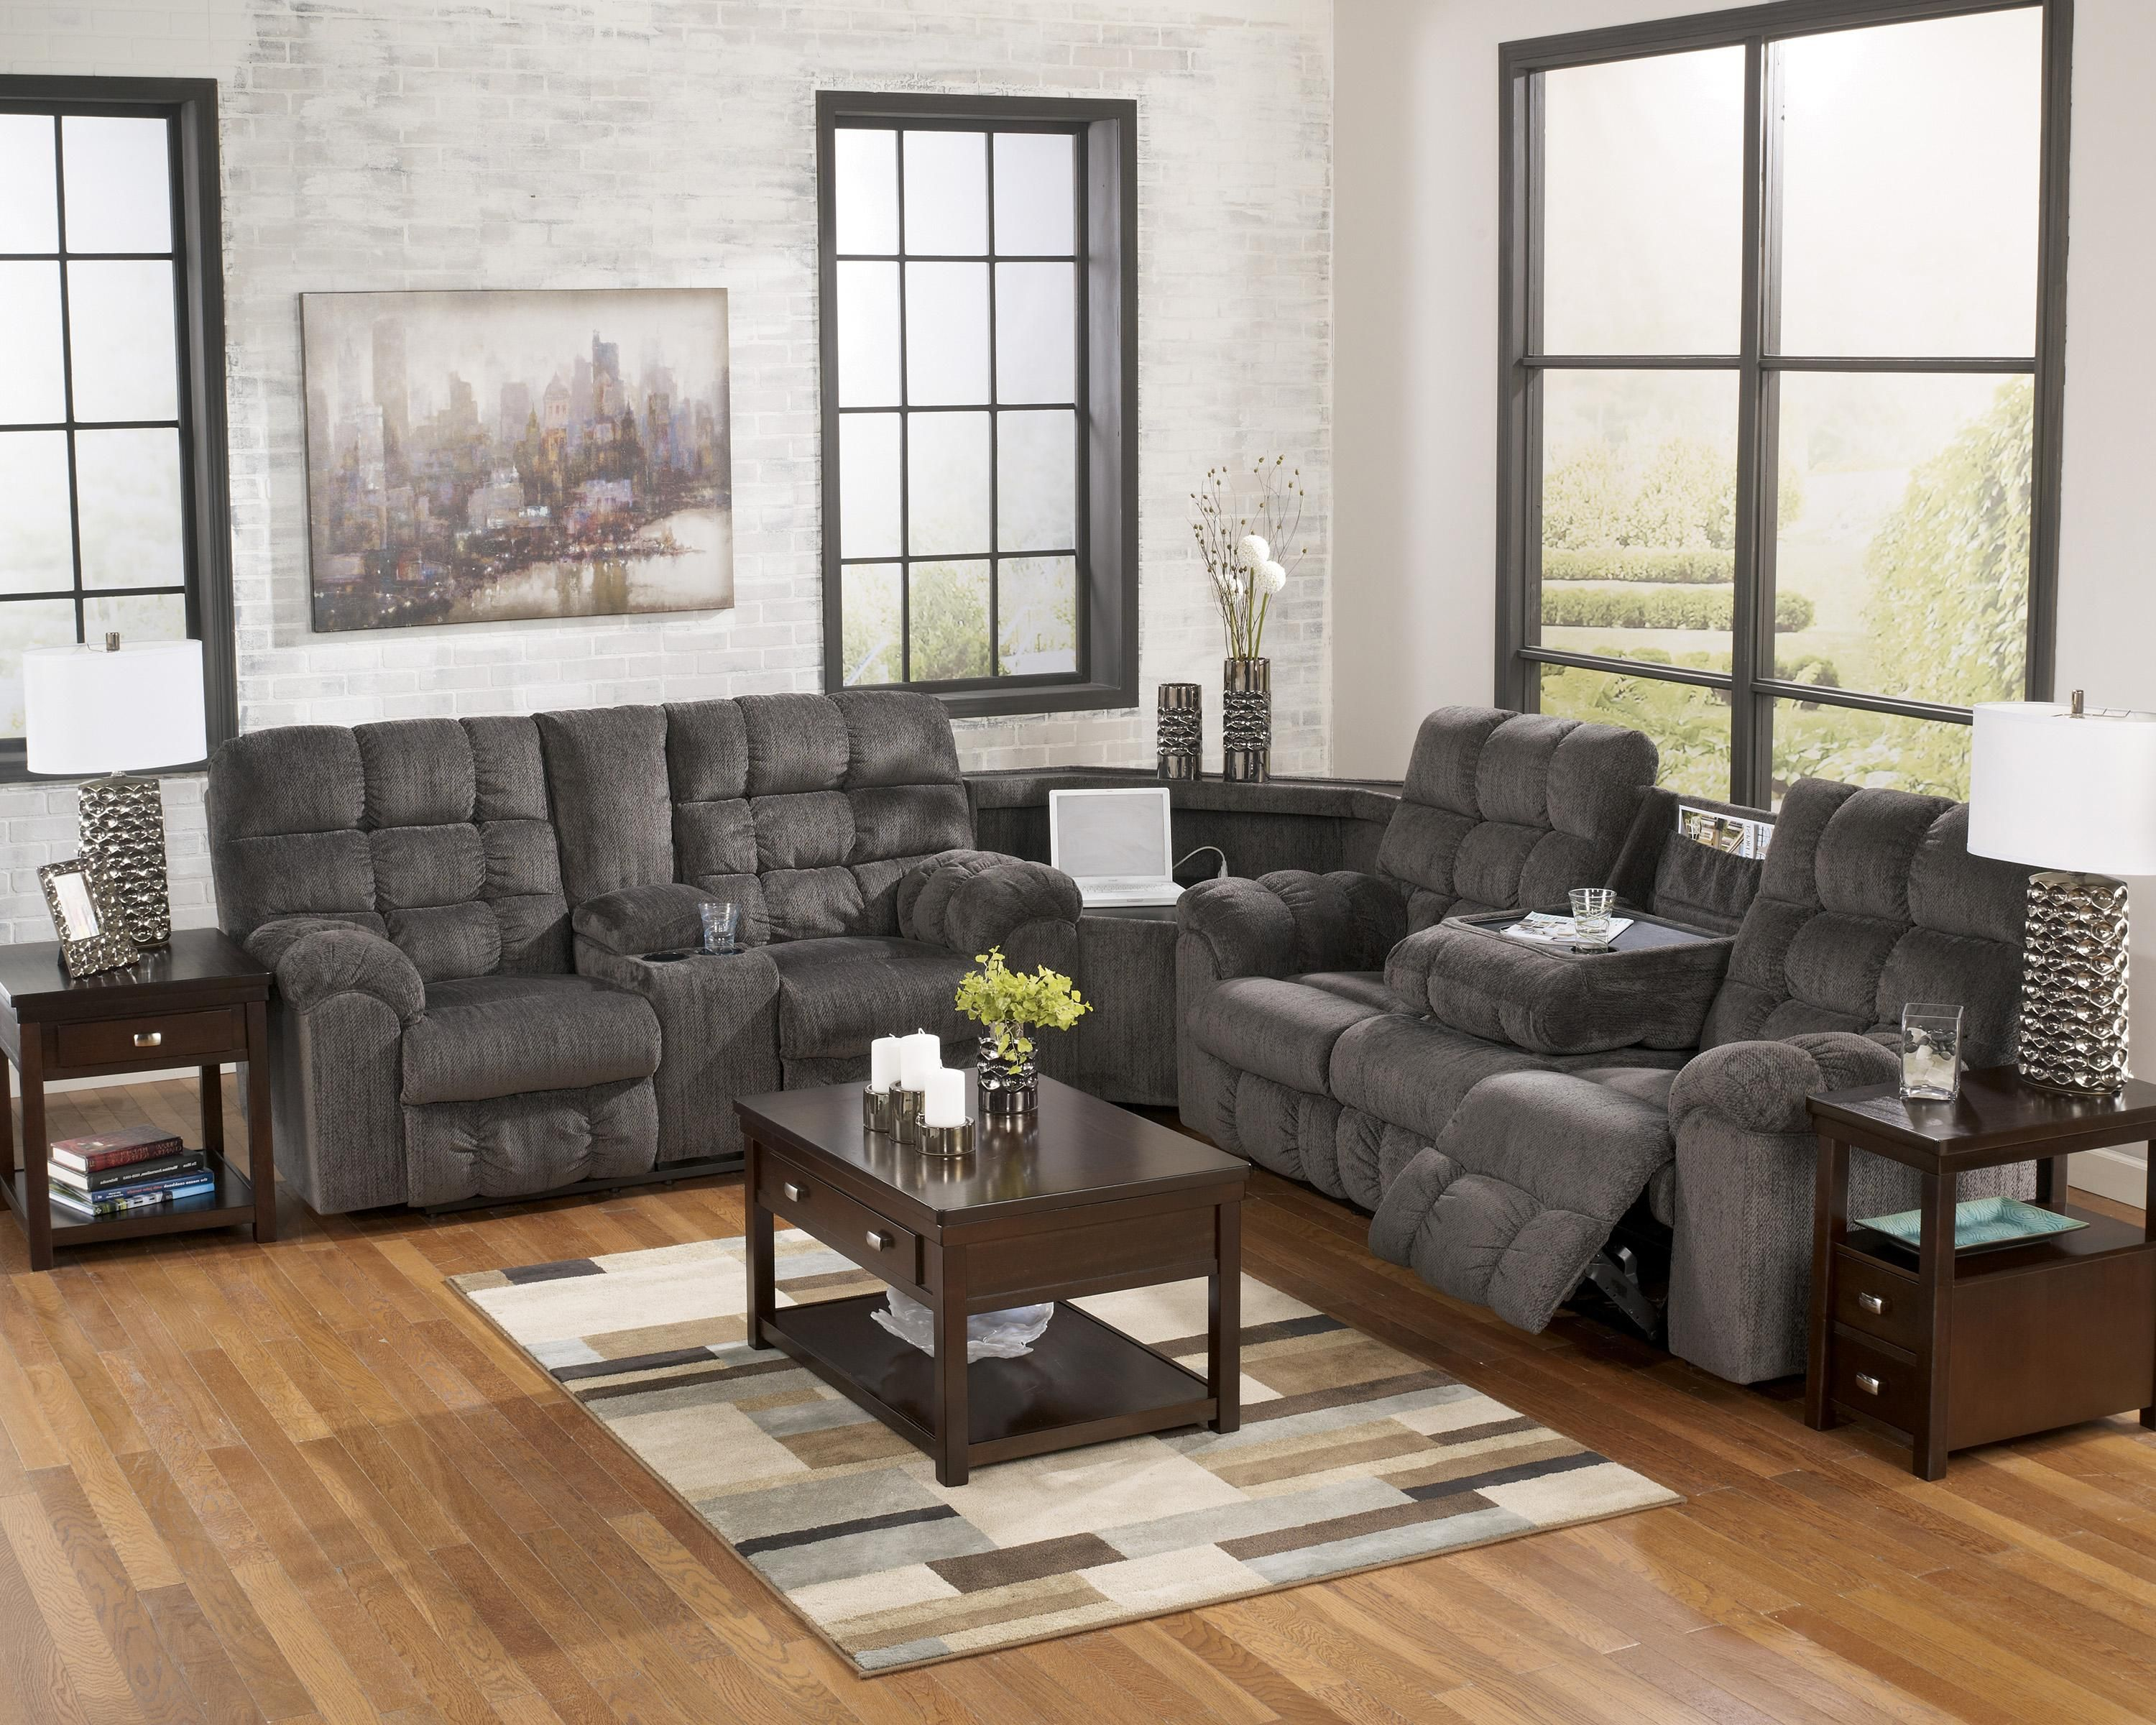 Peachy Acieona Slate Reclining Sectional With Left Side Loveseat Andrewgaddart Wooden Chair Designs For Living Room Andrewgaddartcom